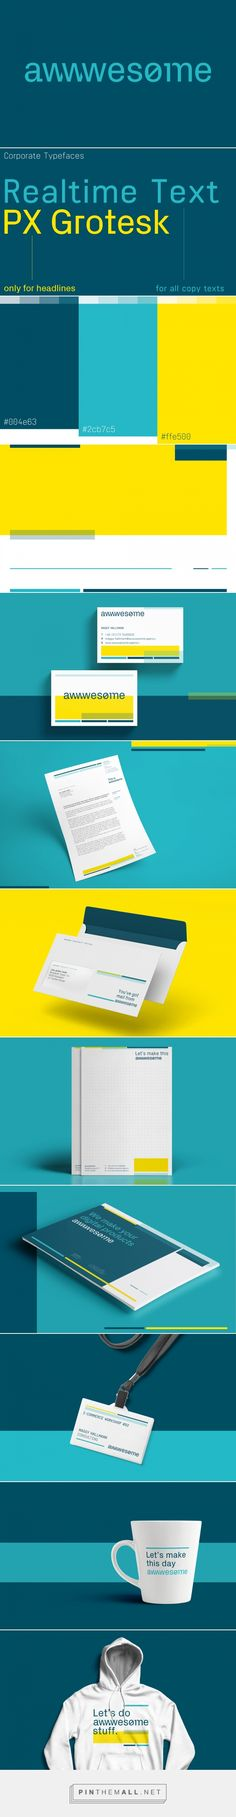 awwwesome Corporate Design - stay golden GmbH - created via https://pinthemall.net